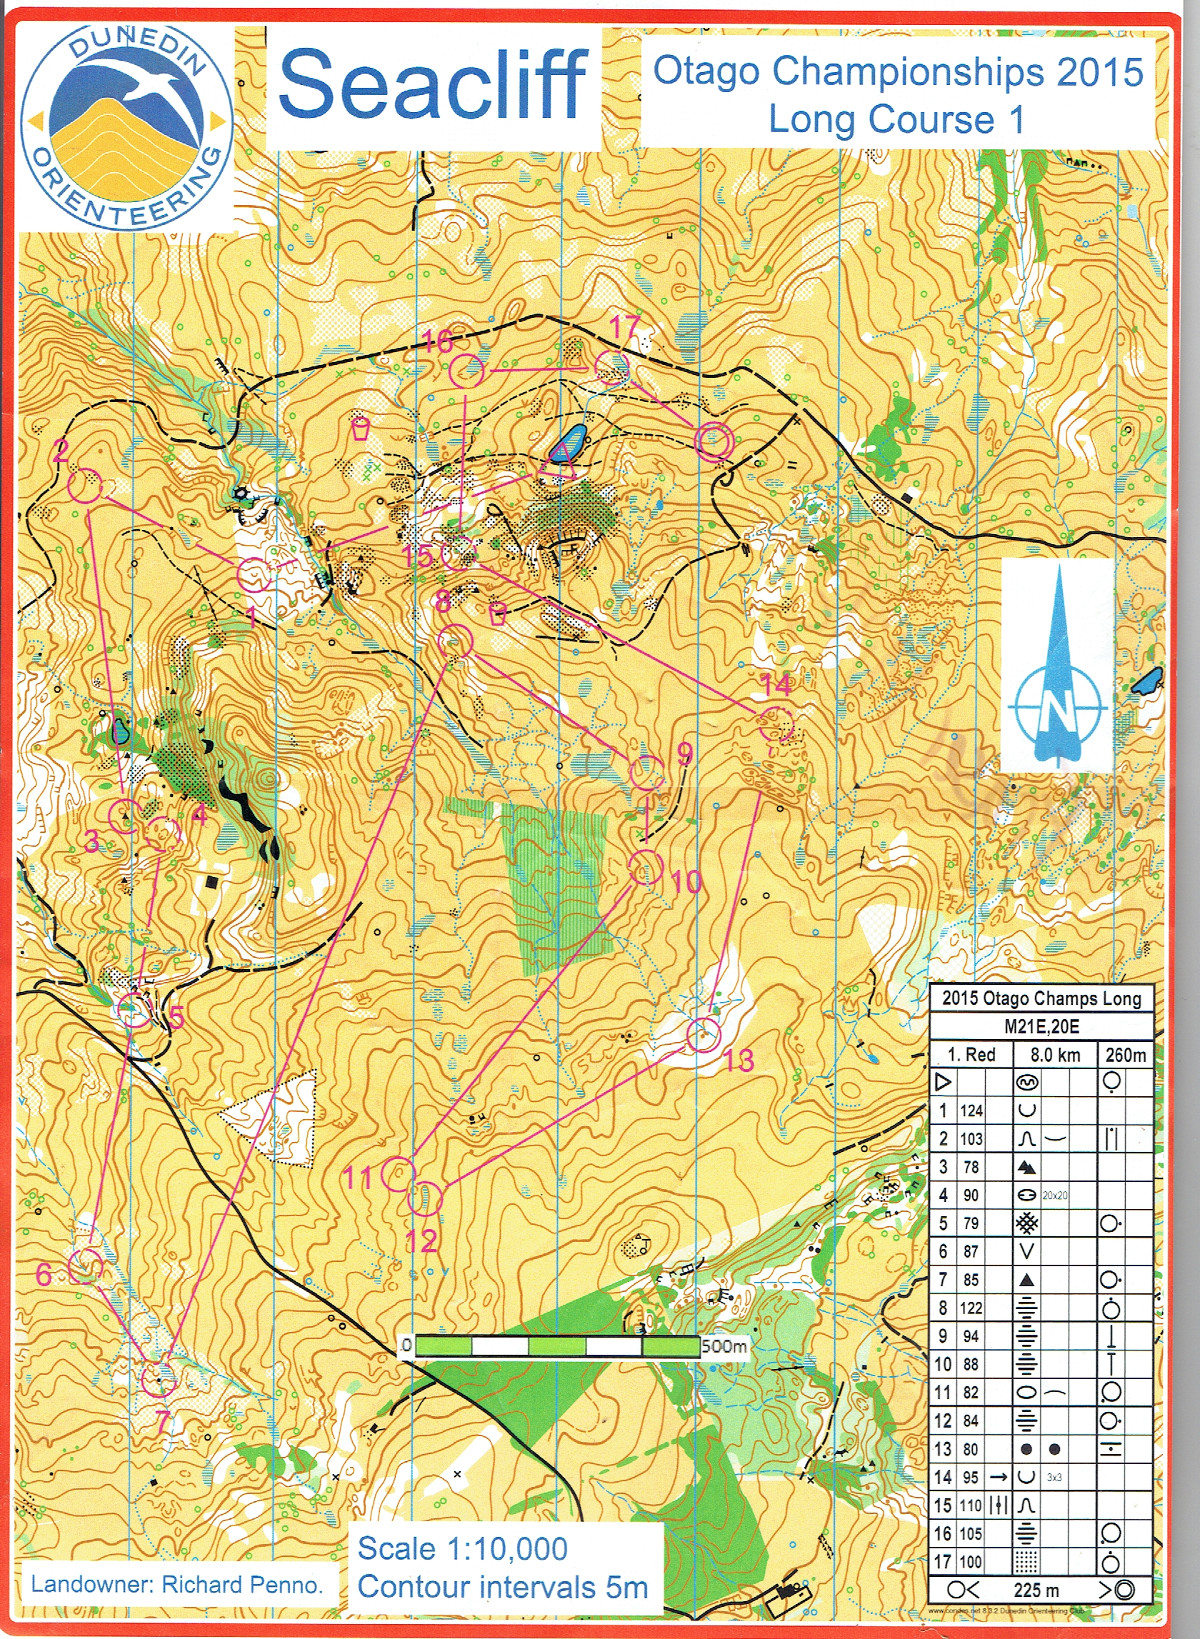 Otago Champs Long 2015 (26/04/2015)